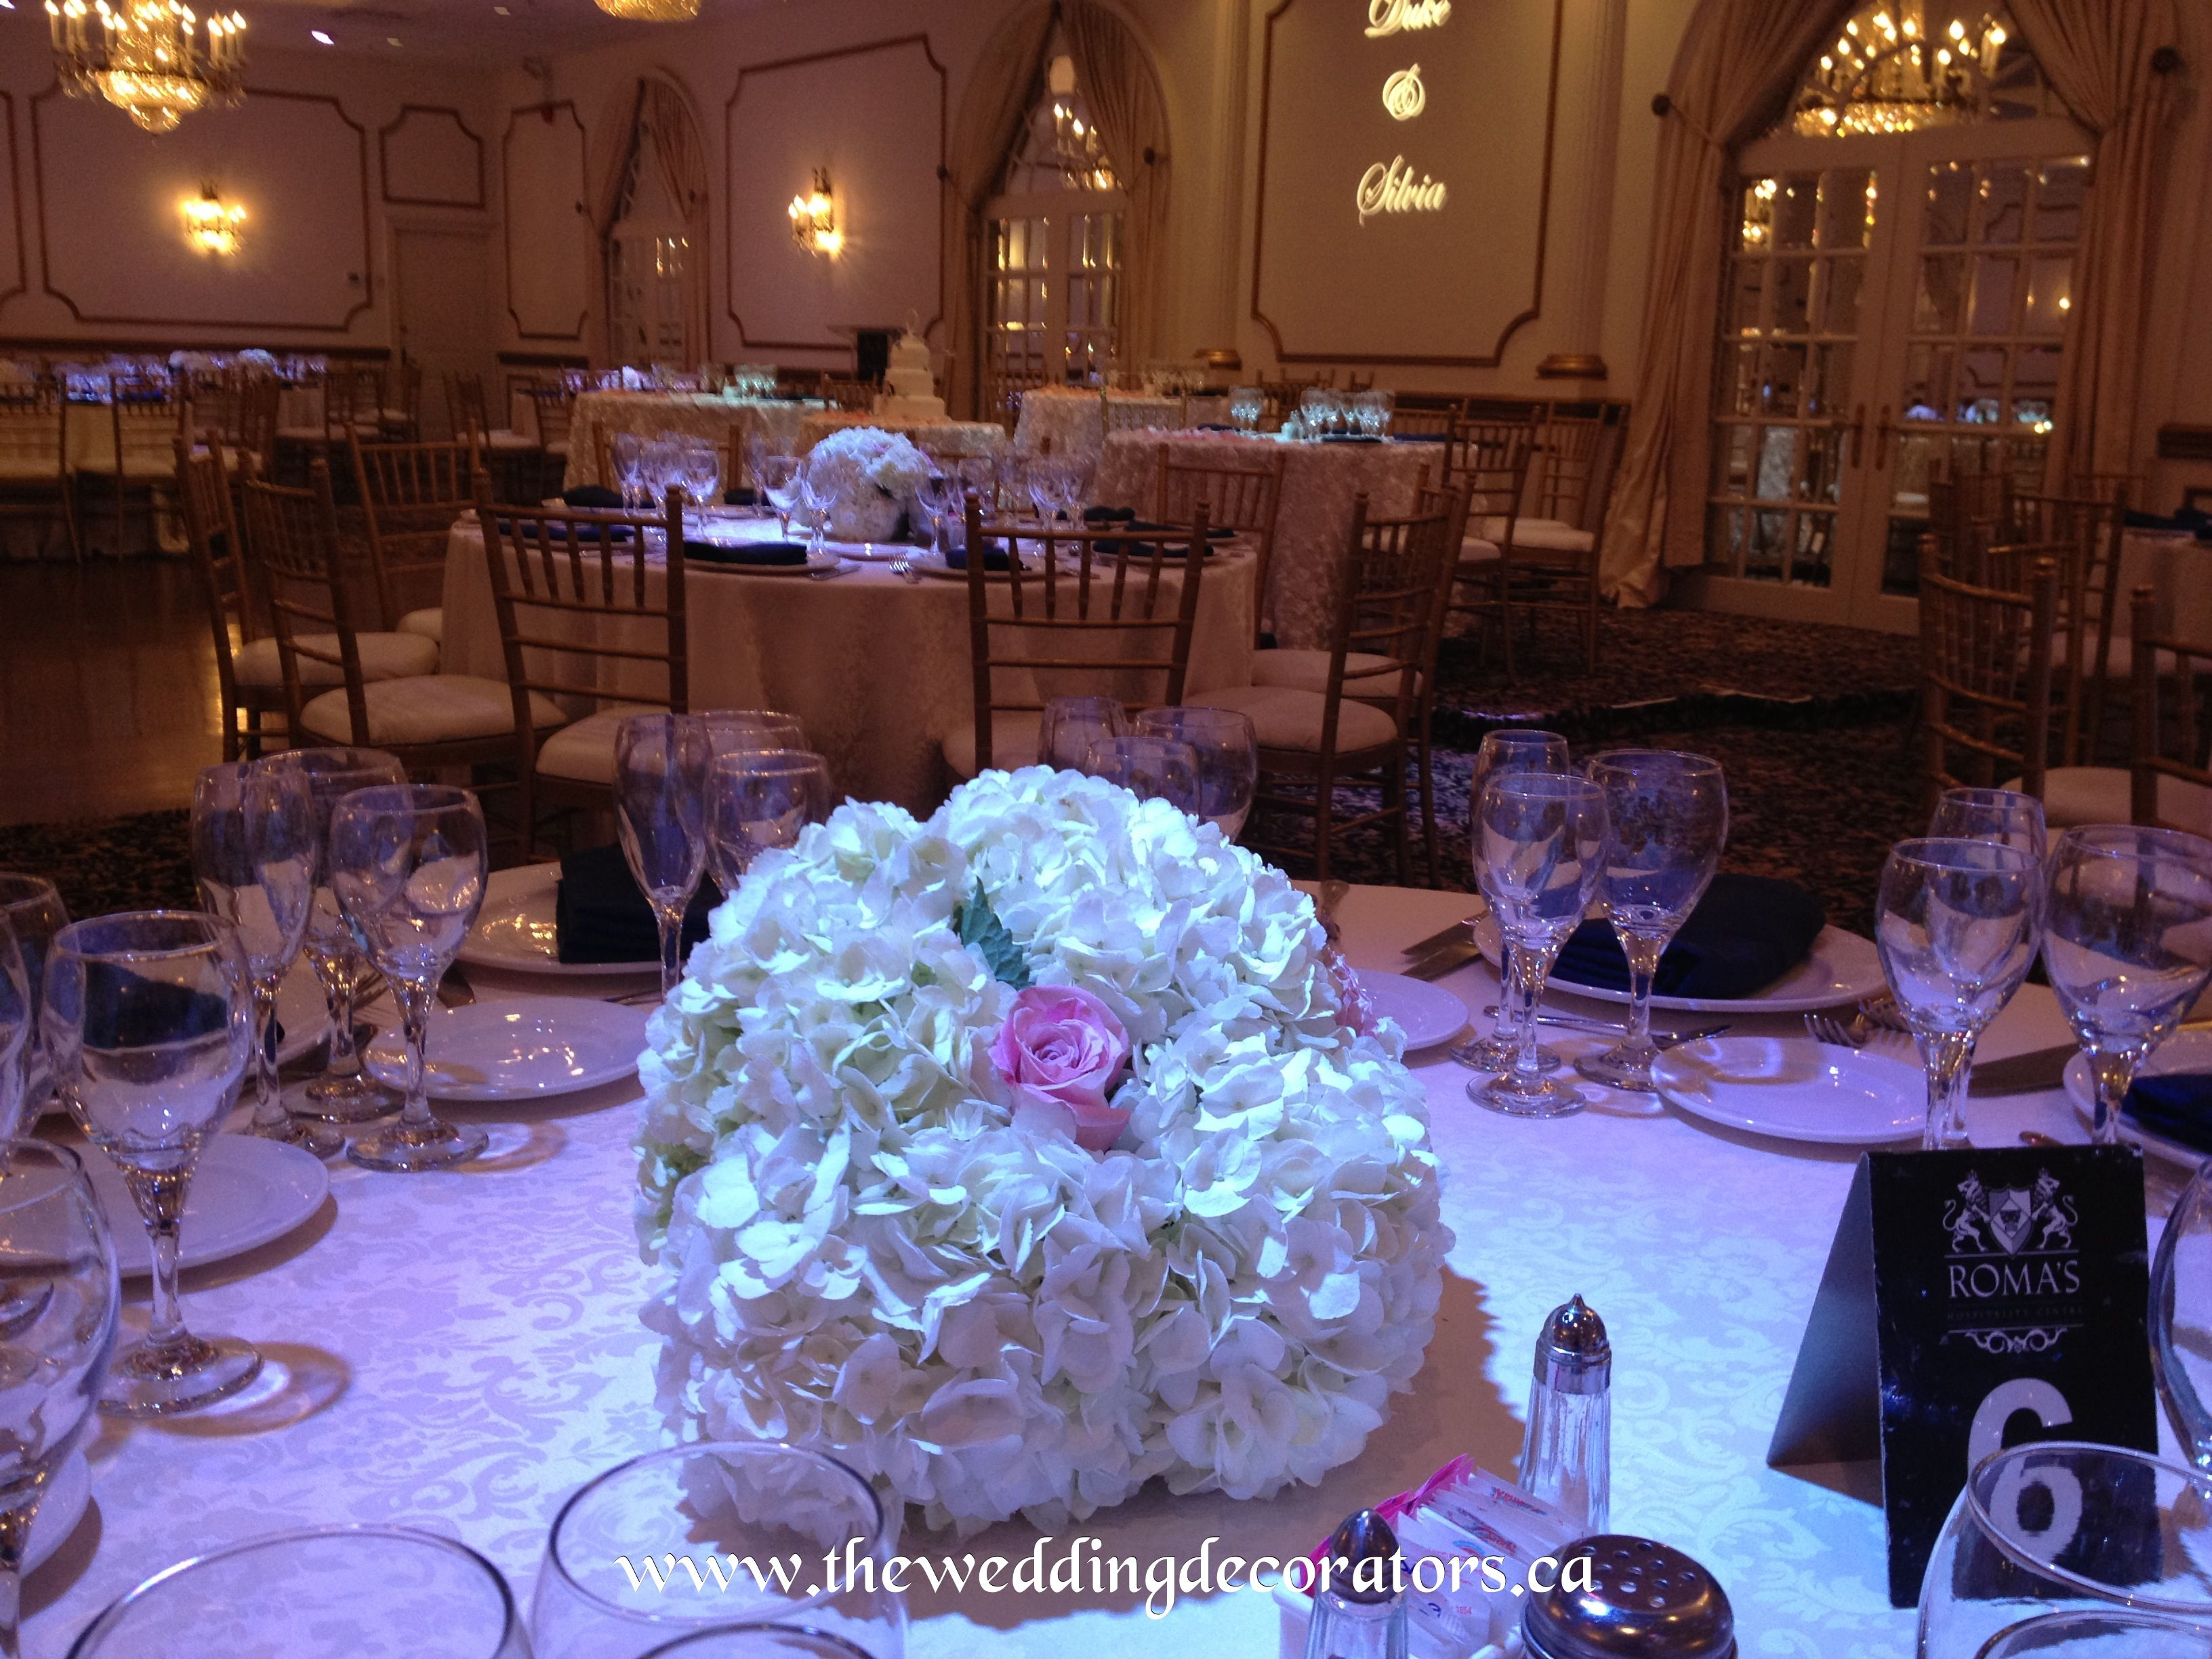 Guest table centrepieces, white hydrangeas & pale pink roses.